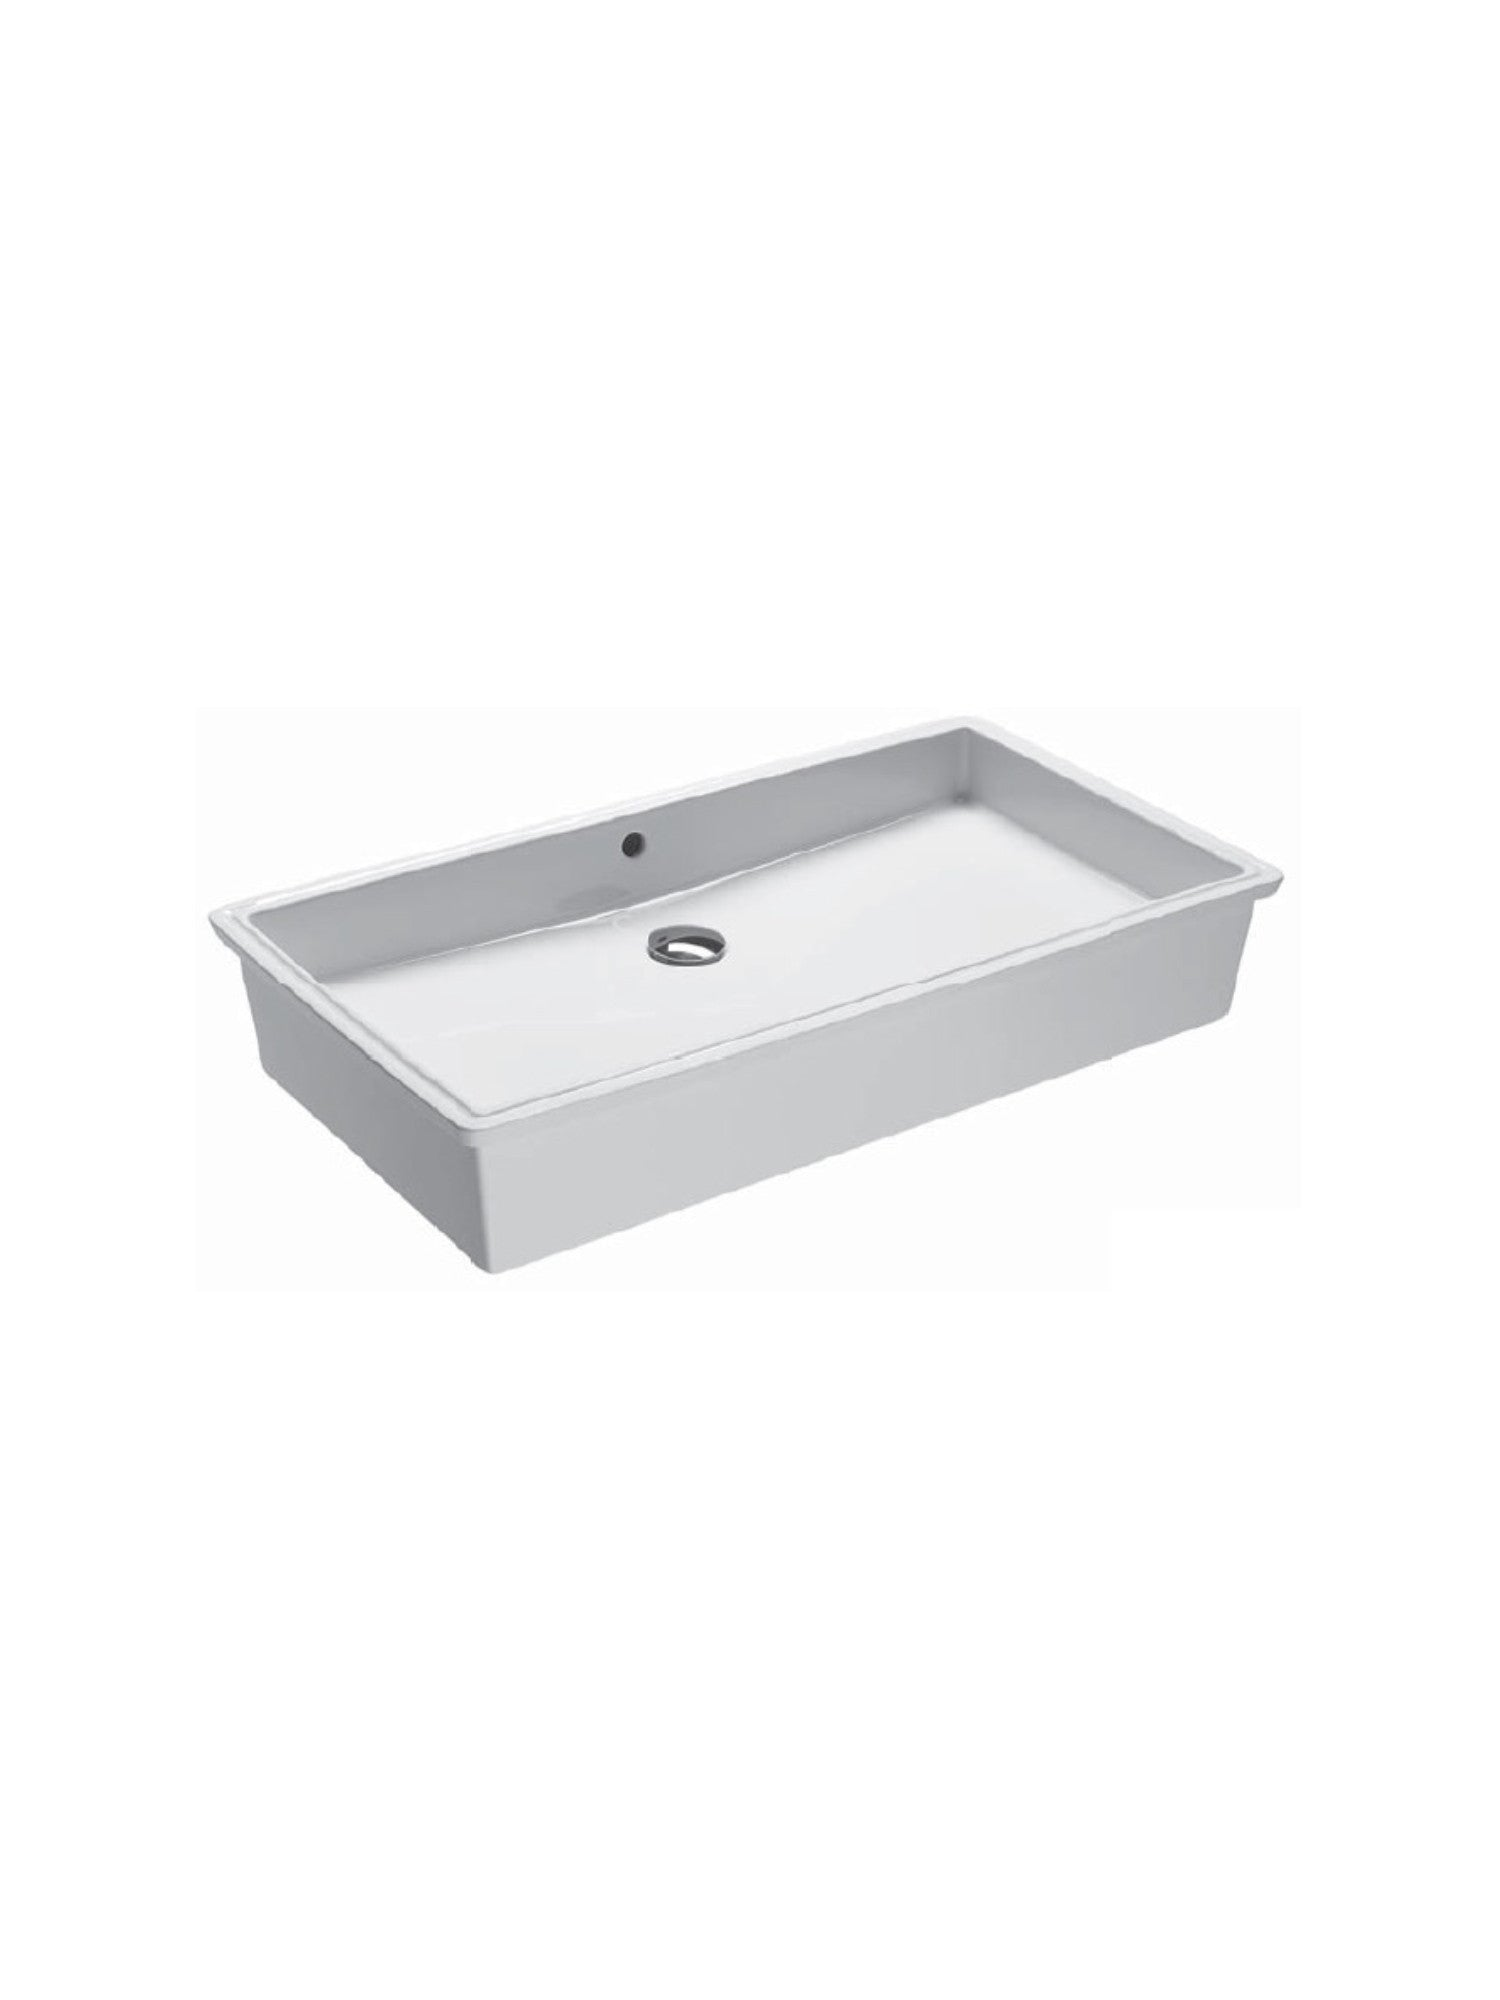 Quadro New 80 Under-Counter Basin #MQR5411